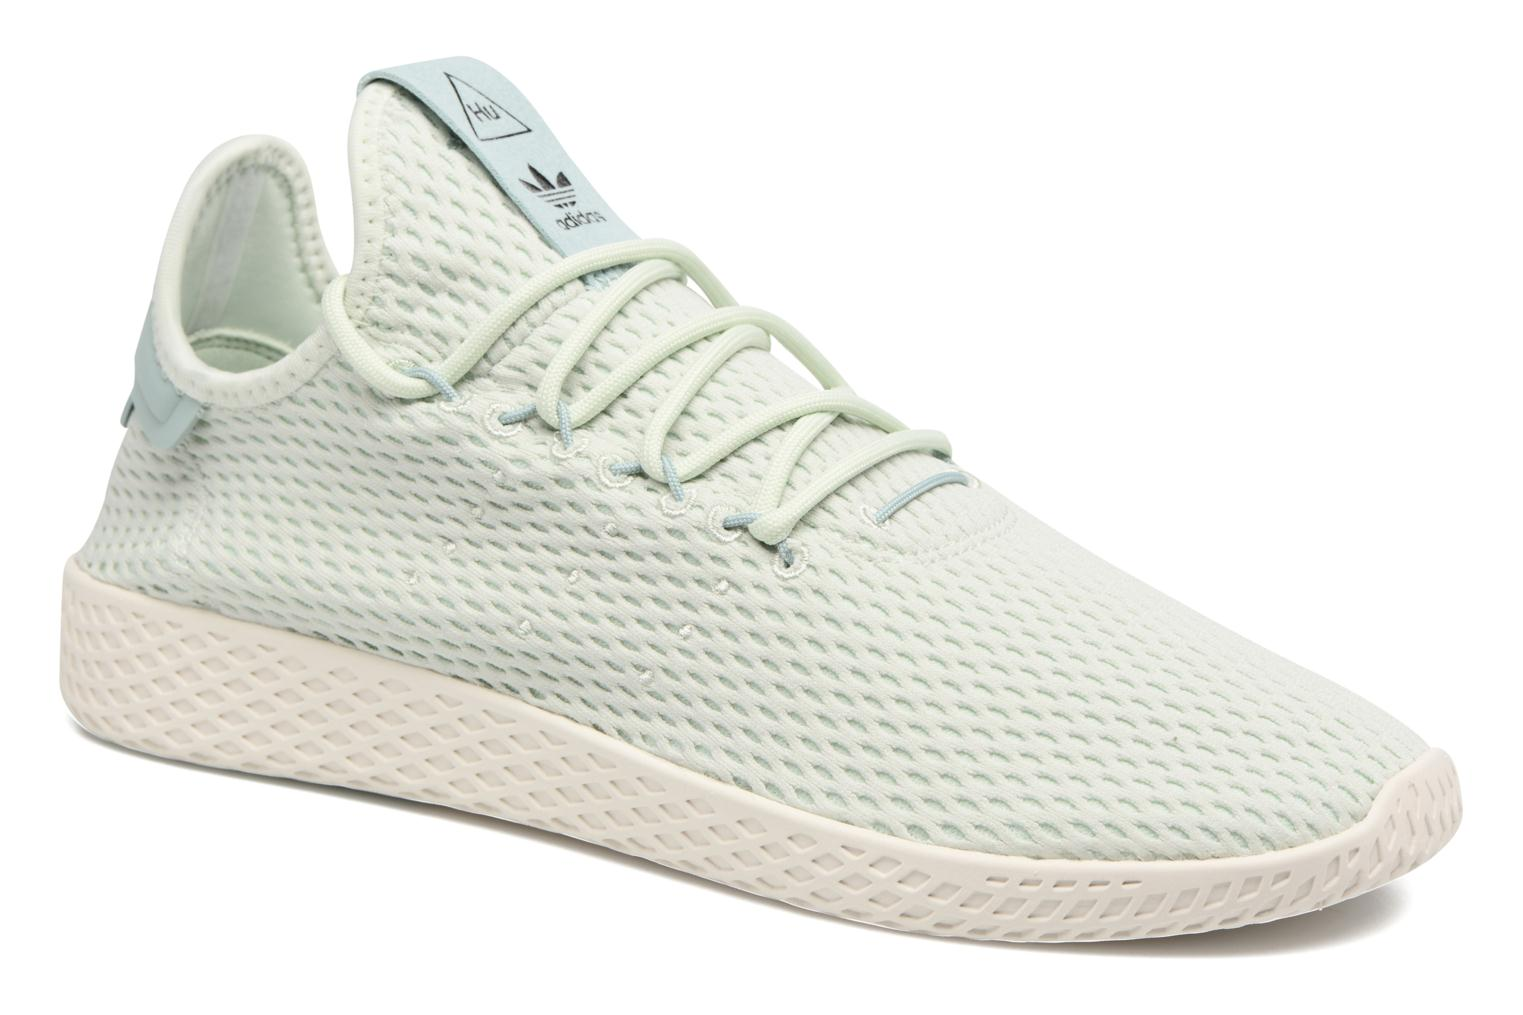 Grisun/Grisun/Blacra Adidas Originals Pharrell Williams Tennis Hu (Gris)